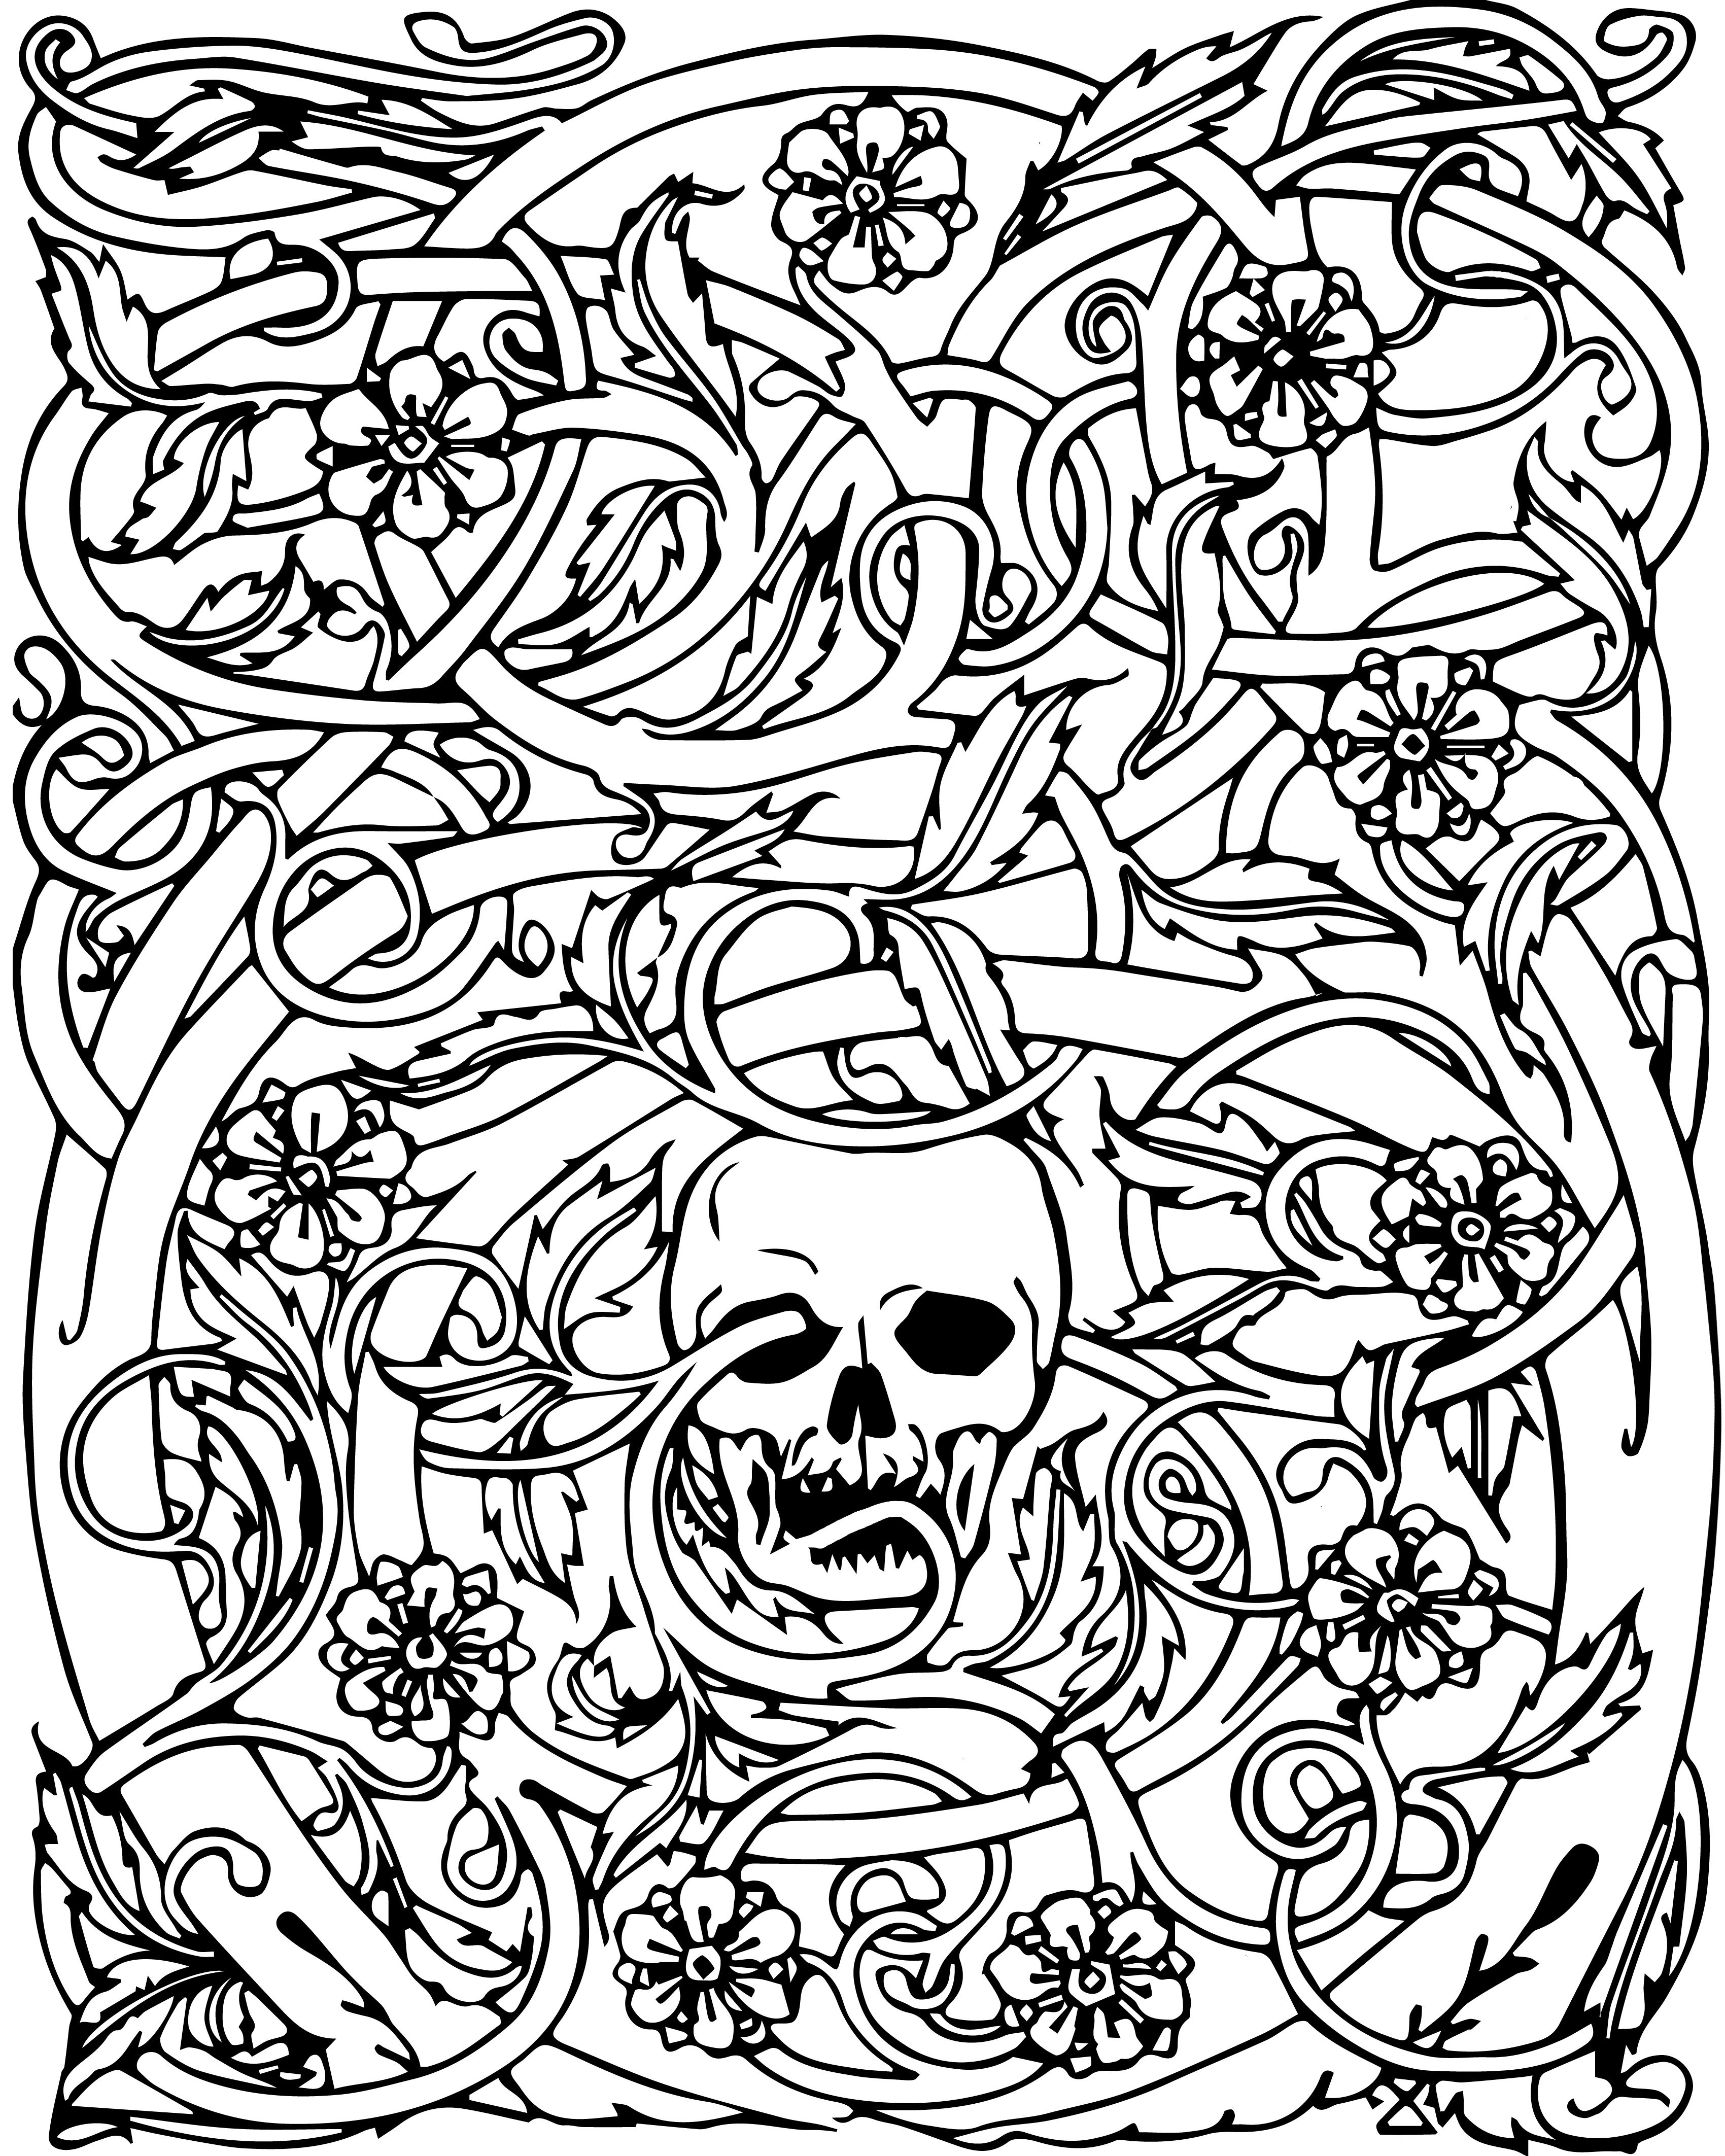 3400x4250 Printable Free Printable Adult Coloring Pages High